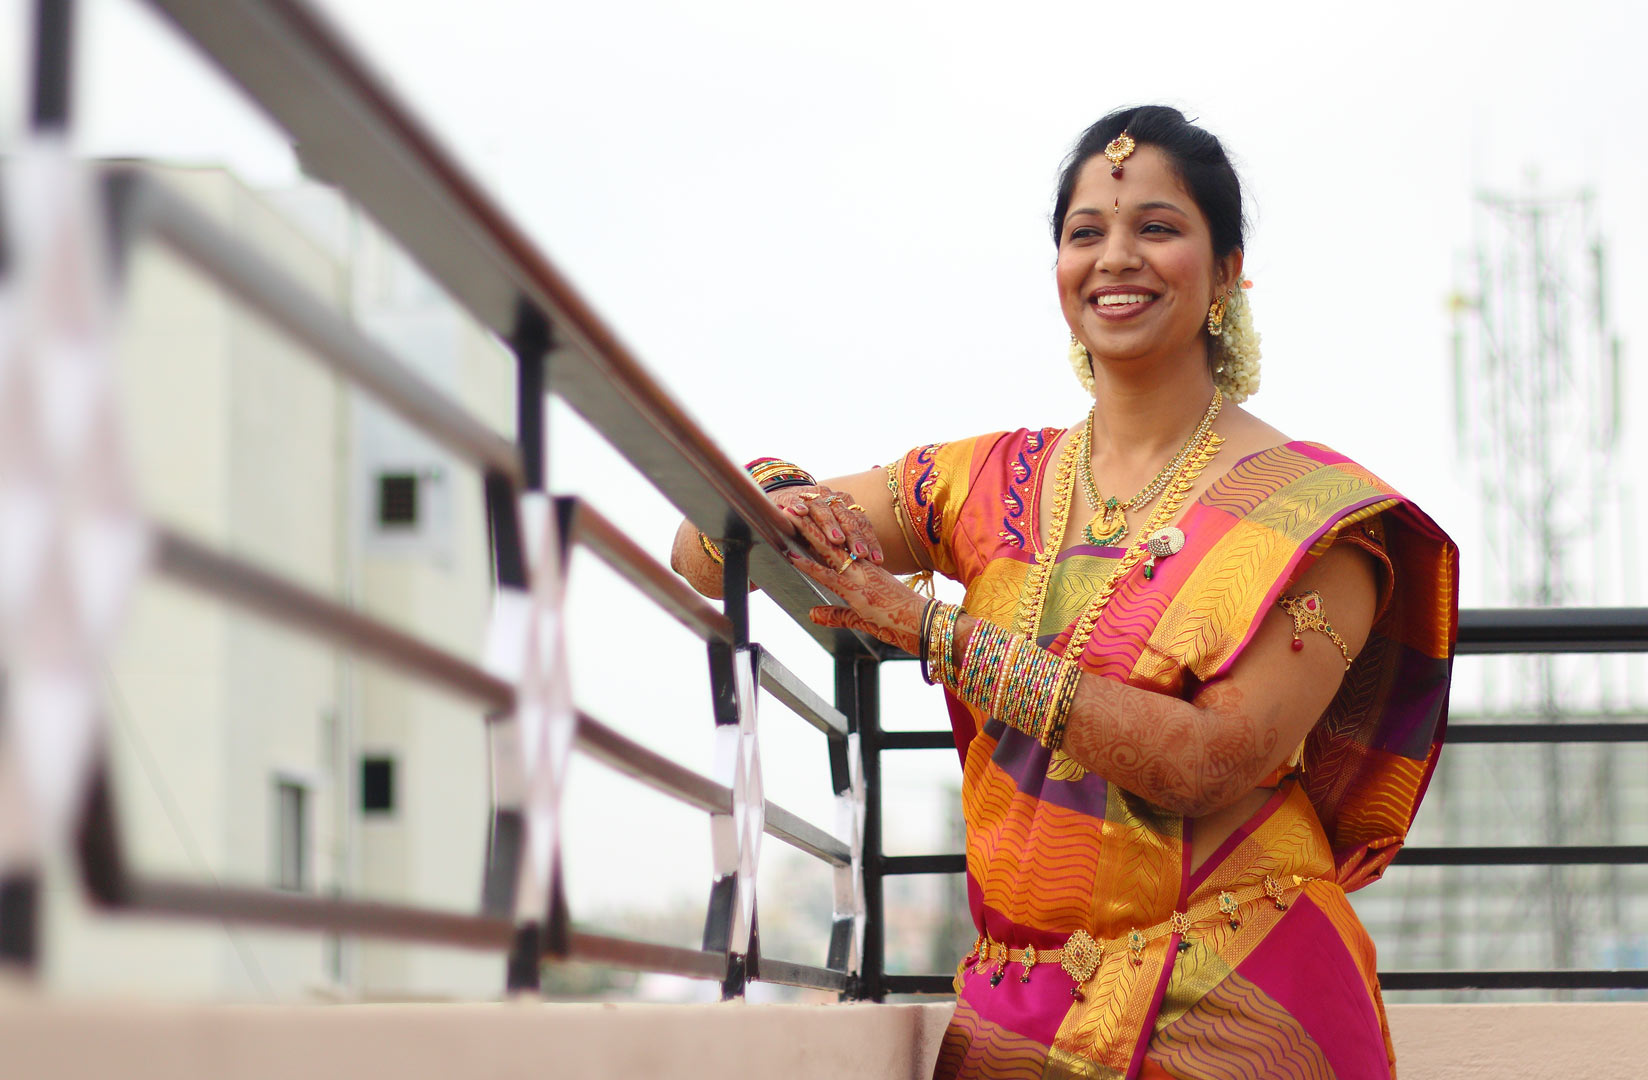 Bride all decked up on her wedding day